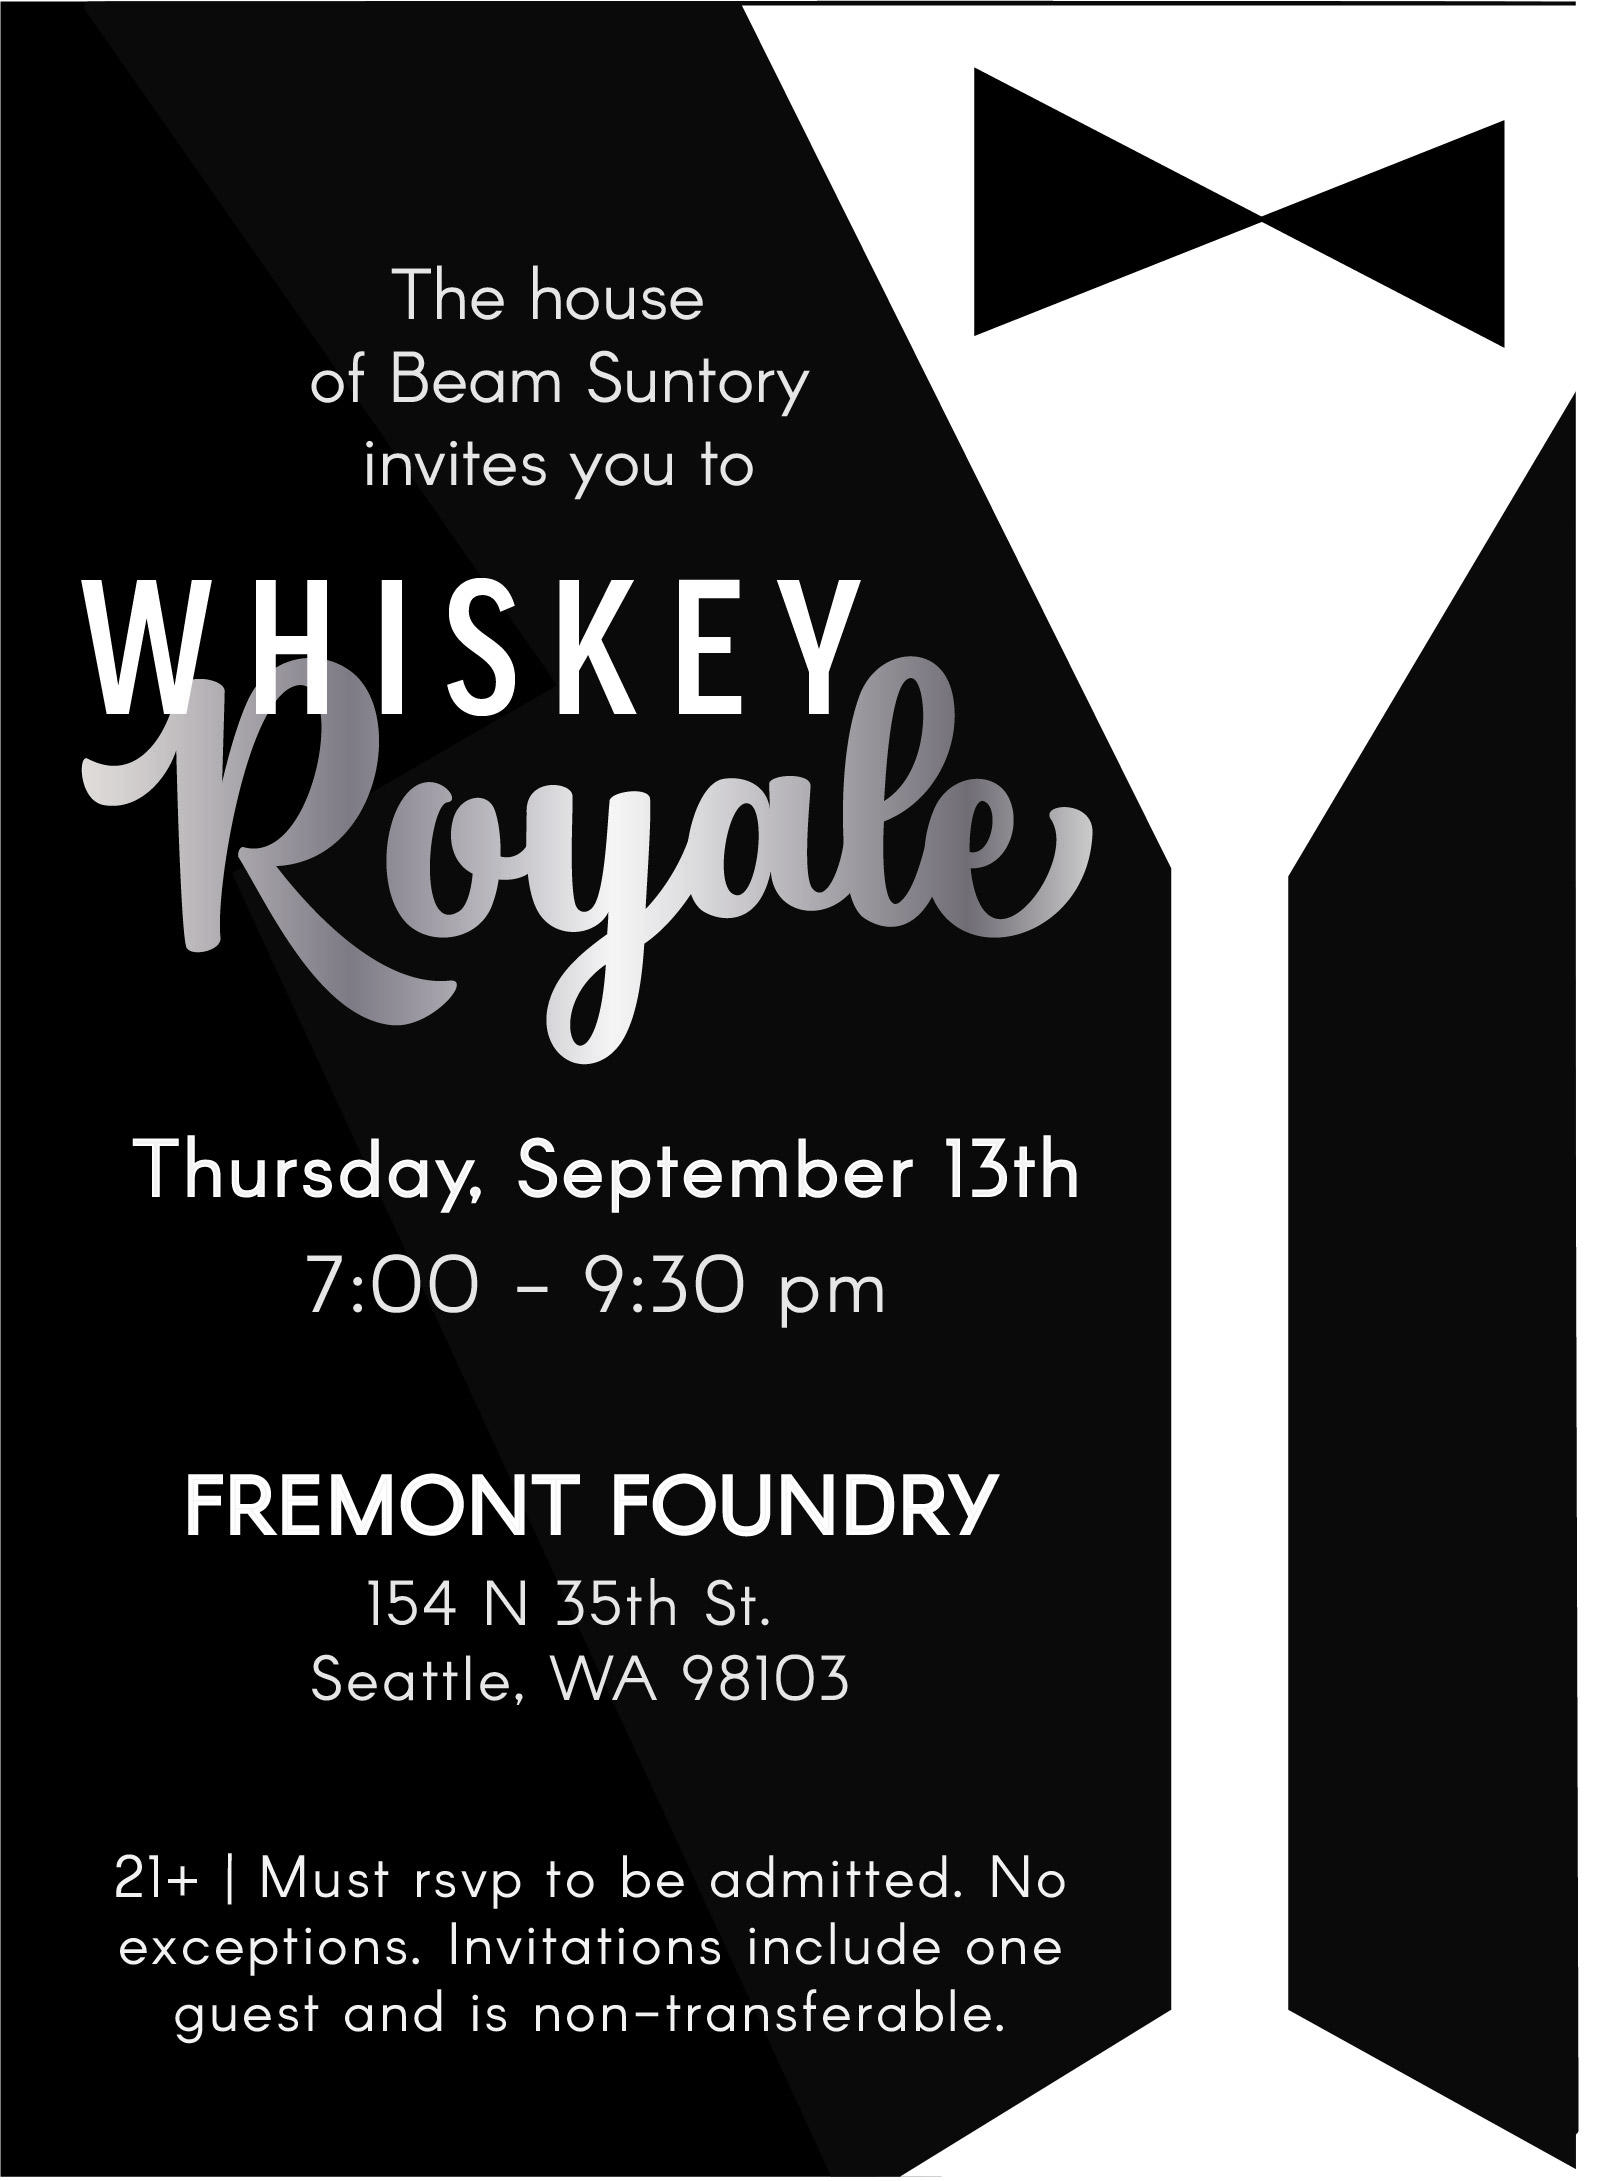 dff.whiskey-royale-invite-print.jpg